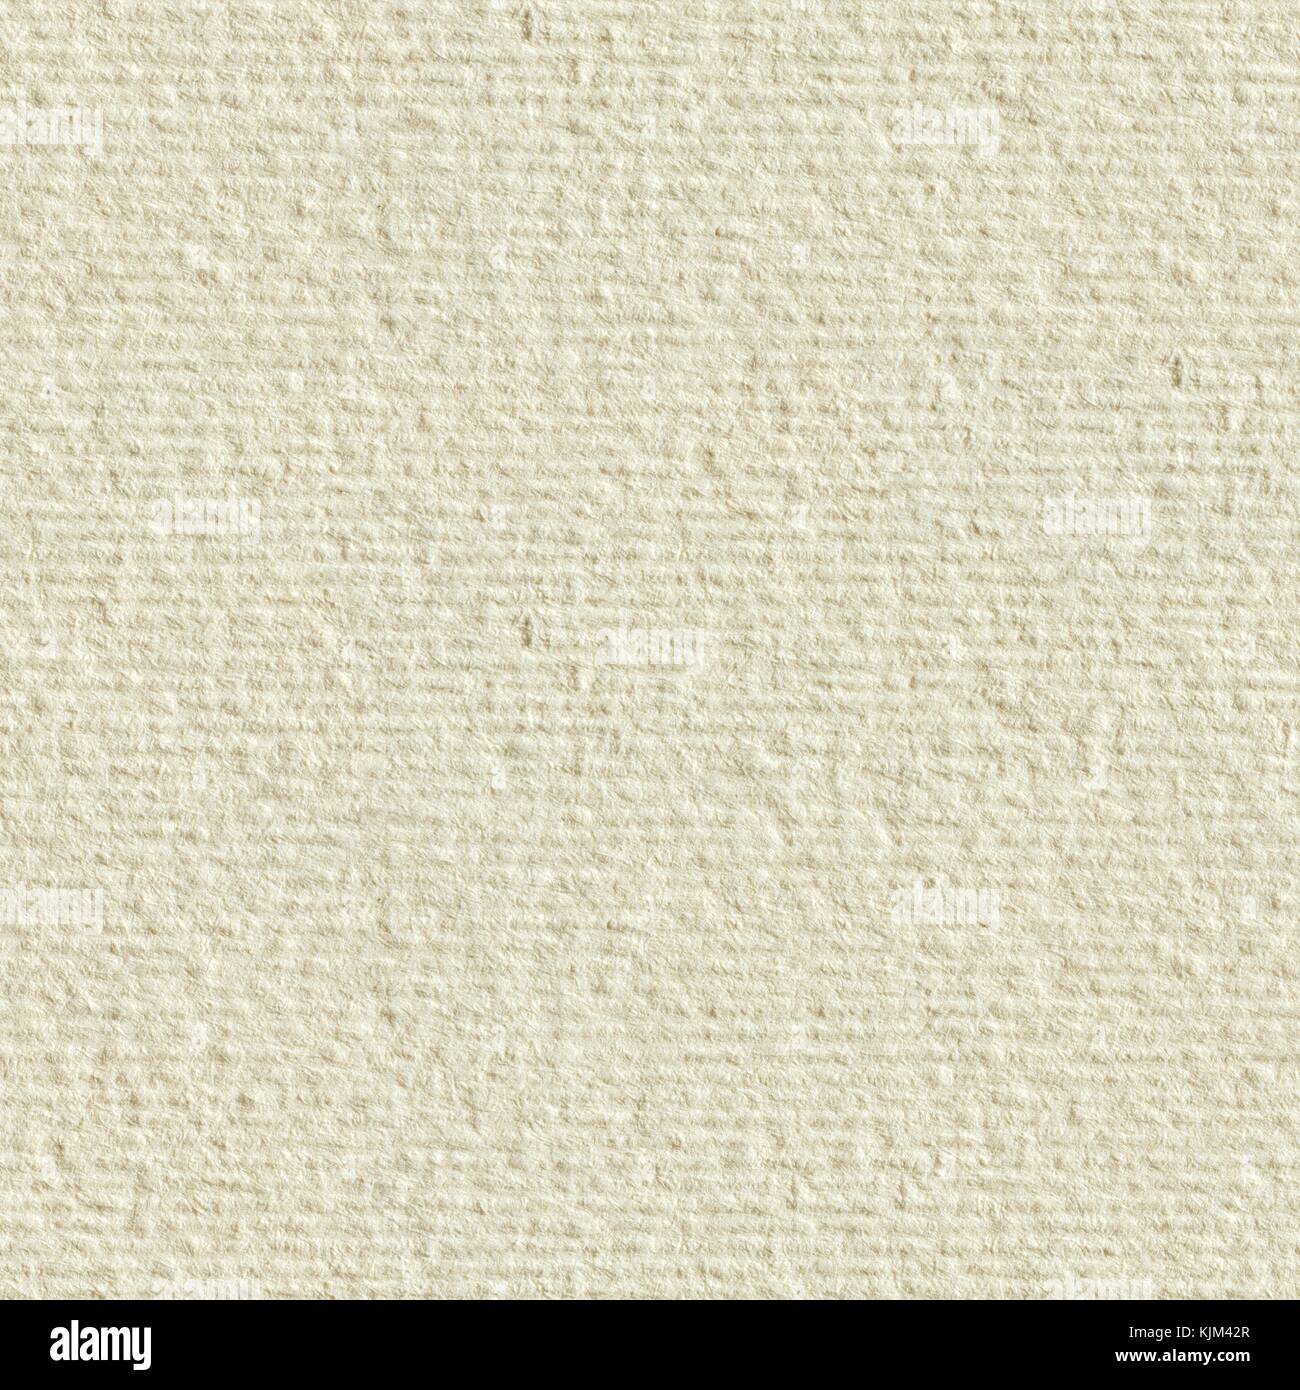 Cream Textured Paper Seamless Square Texture Tile Ready